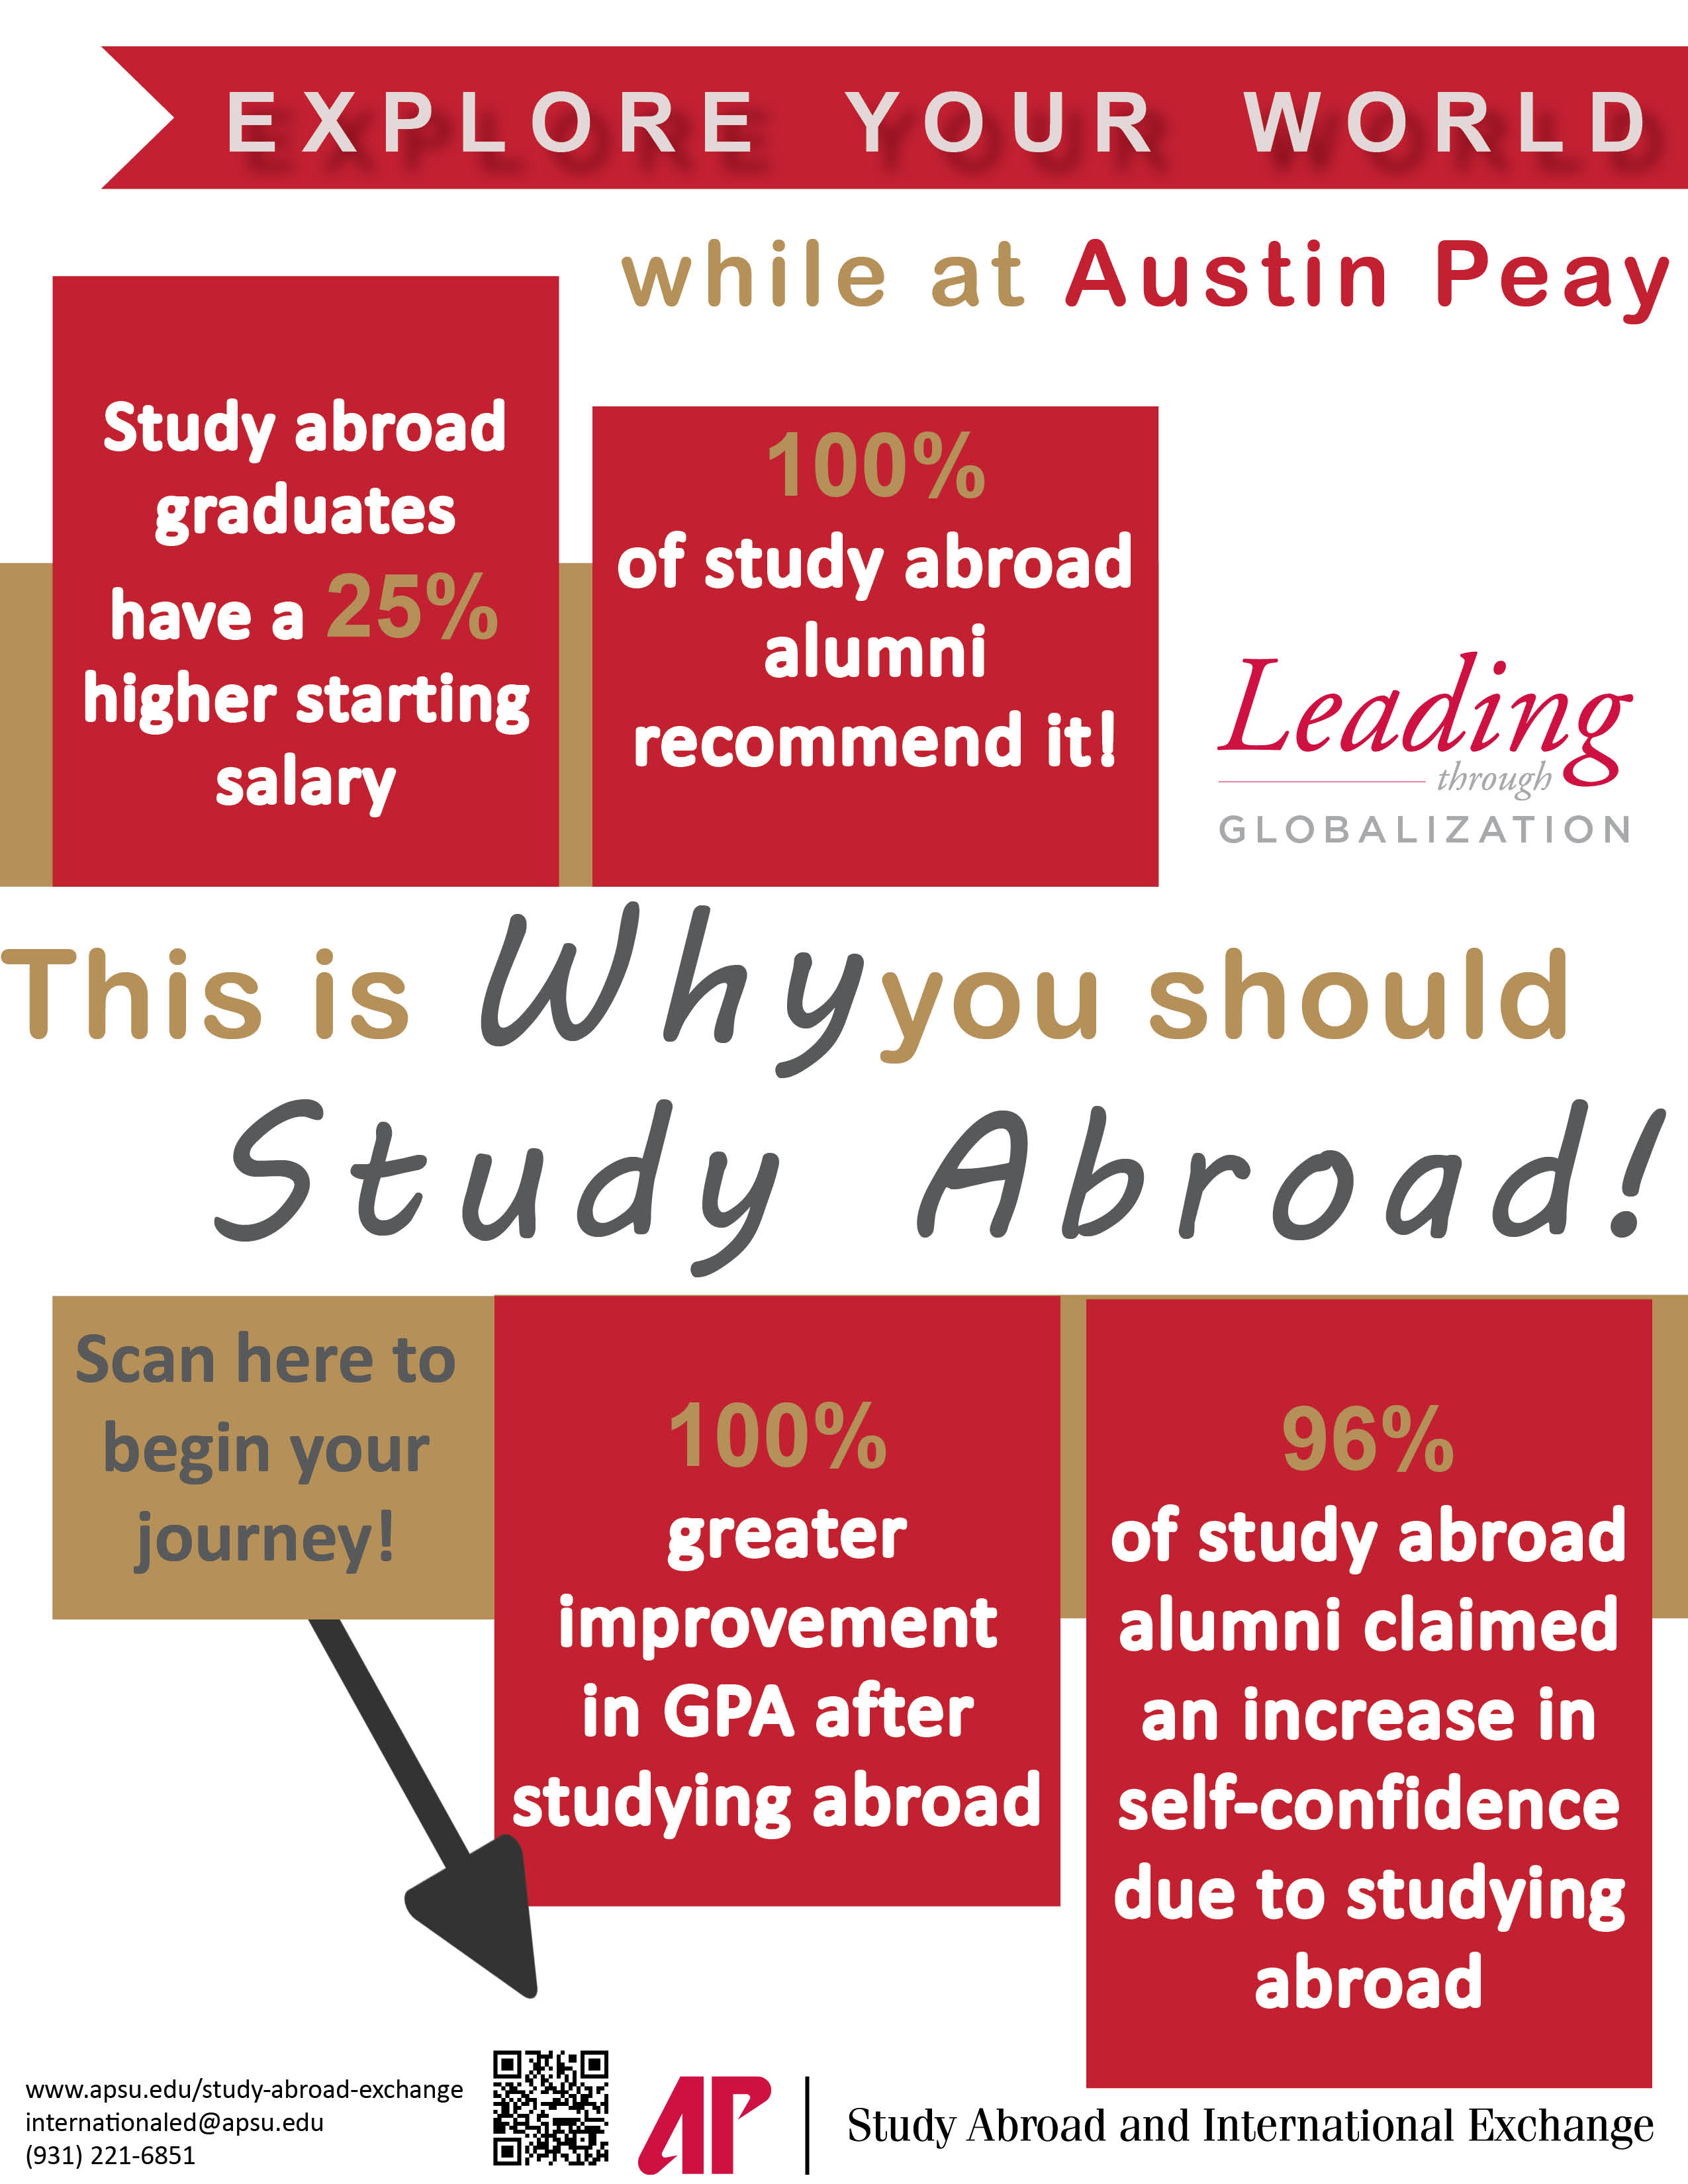 How to Find Study Abroad Housing | Go Overseas